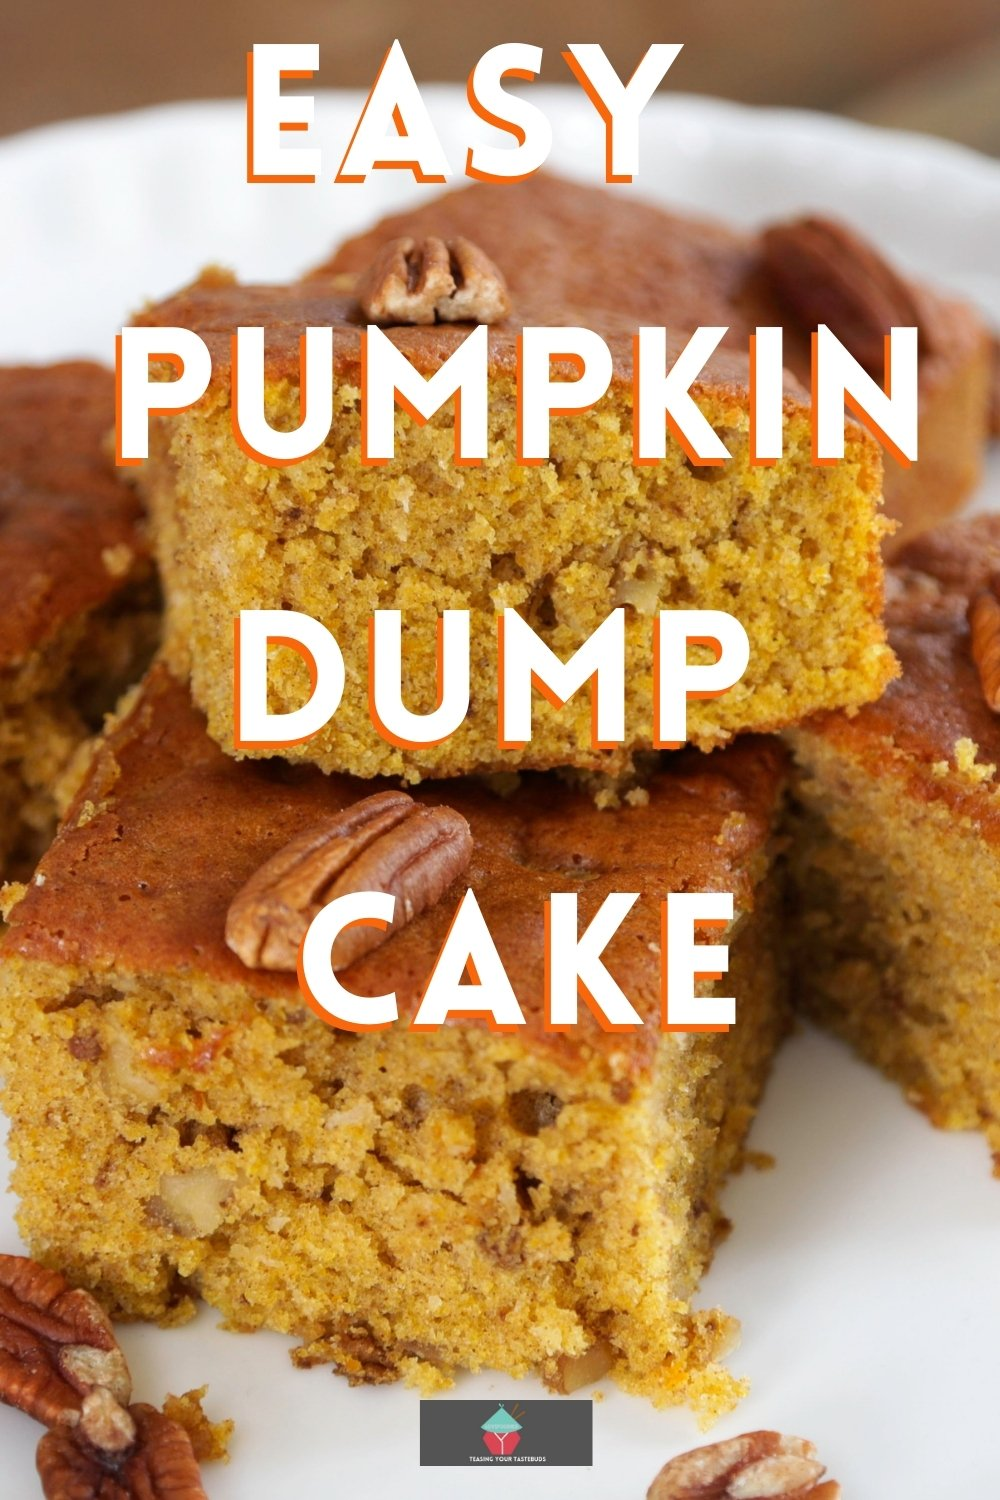 Easy Breezy Pumpkin Dump Cake, an easy soft, moist cake recipe, regular and lite versions available. Simply mix, dump and bake to get a delicious Fall cake!